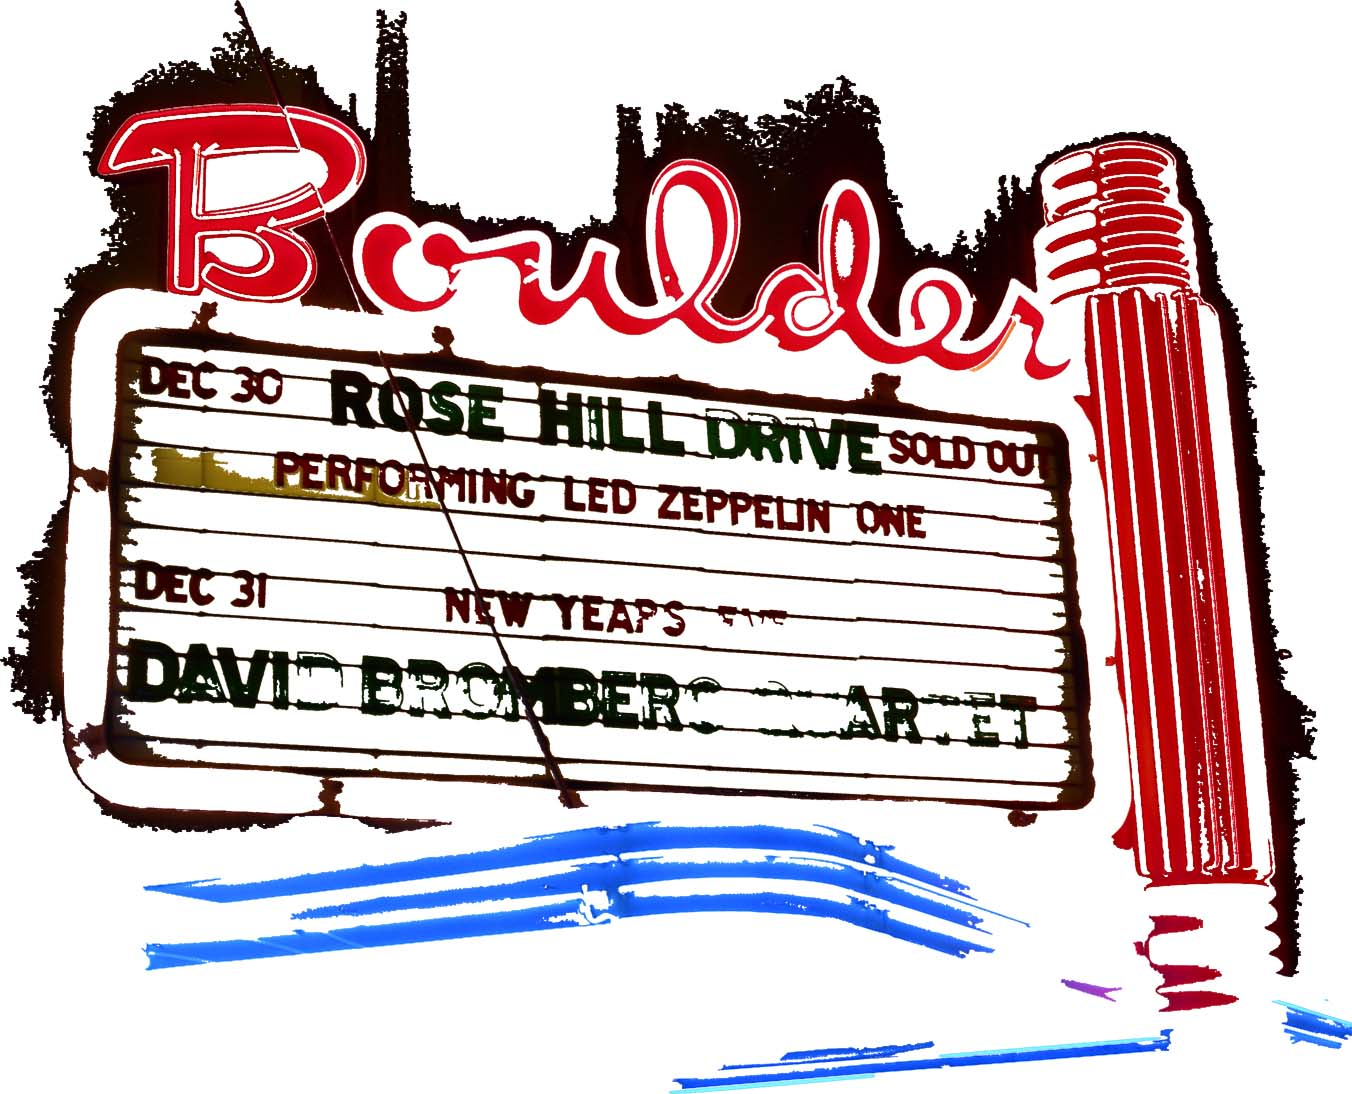 Good Times Bad Times: Rose Hill Drive Does Zeppelin I